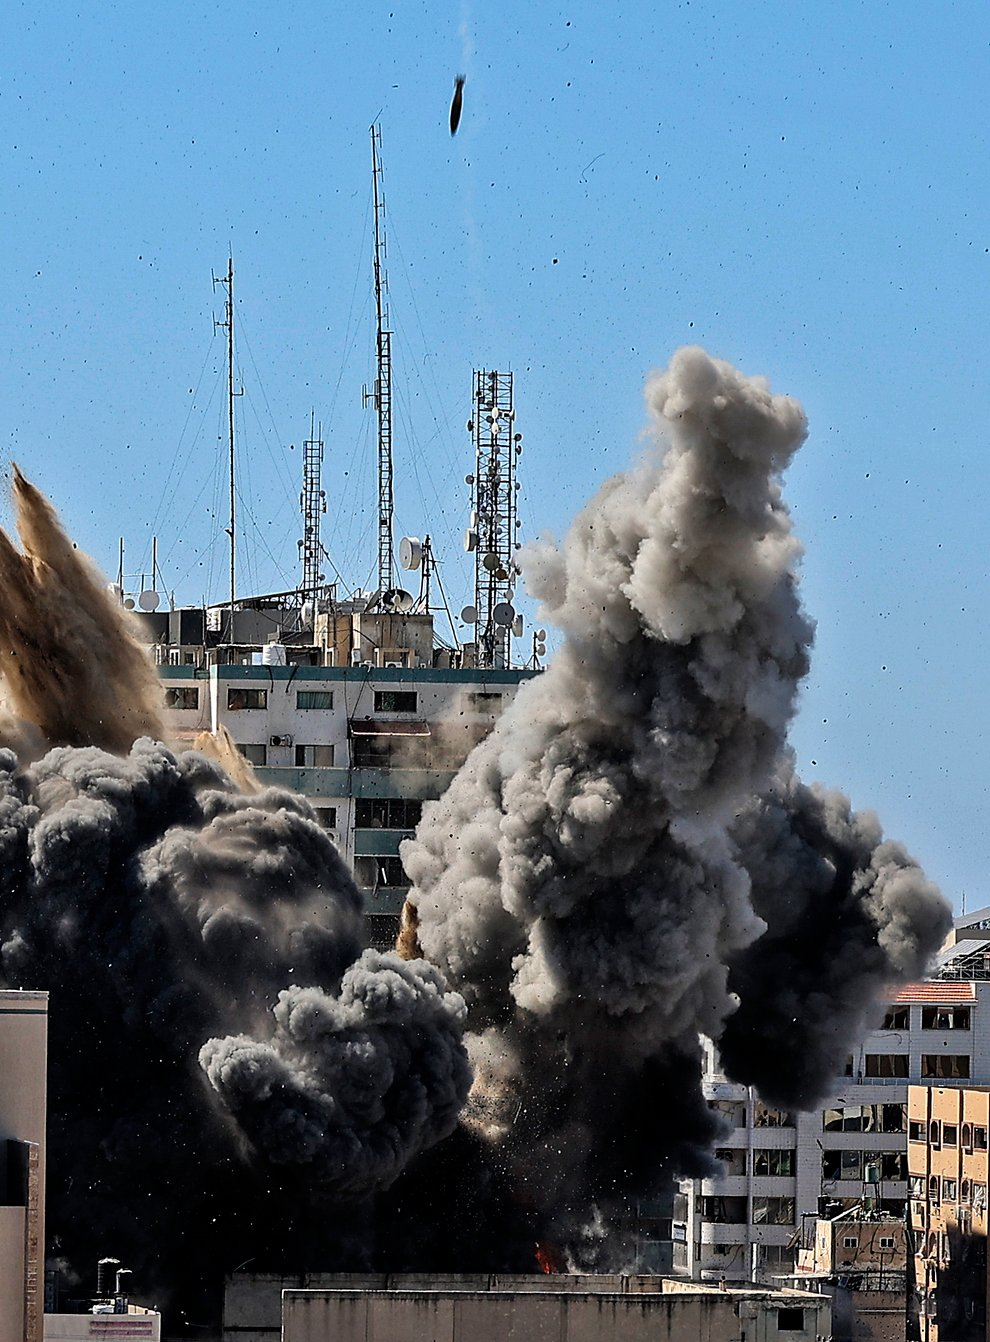 A bomb hits the building